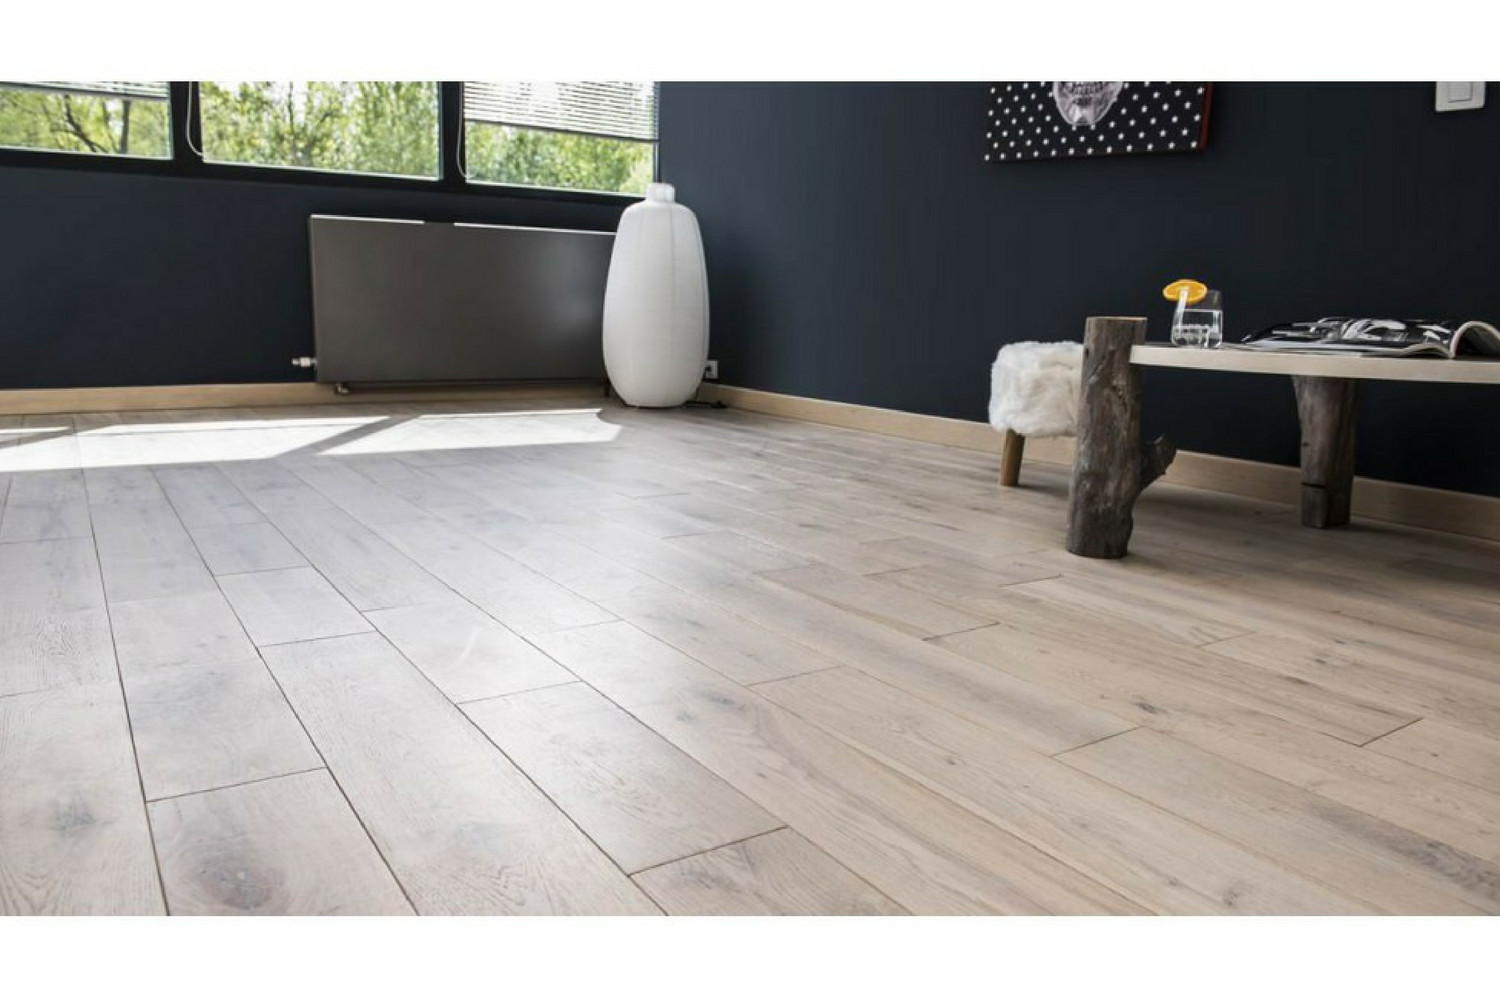 hardwood floor installation time of greywash 5 european white oak solid hardwood easiklip inside our greywash solid oak floating floor is the floor of the times its bleached oil finish makes it the king of contemporary decor as it brings light and